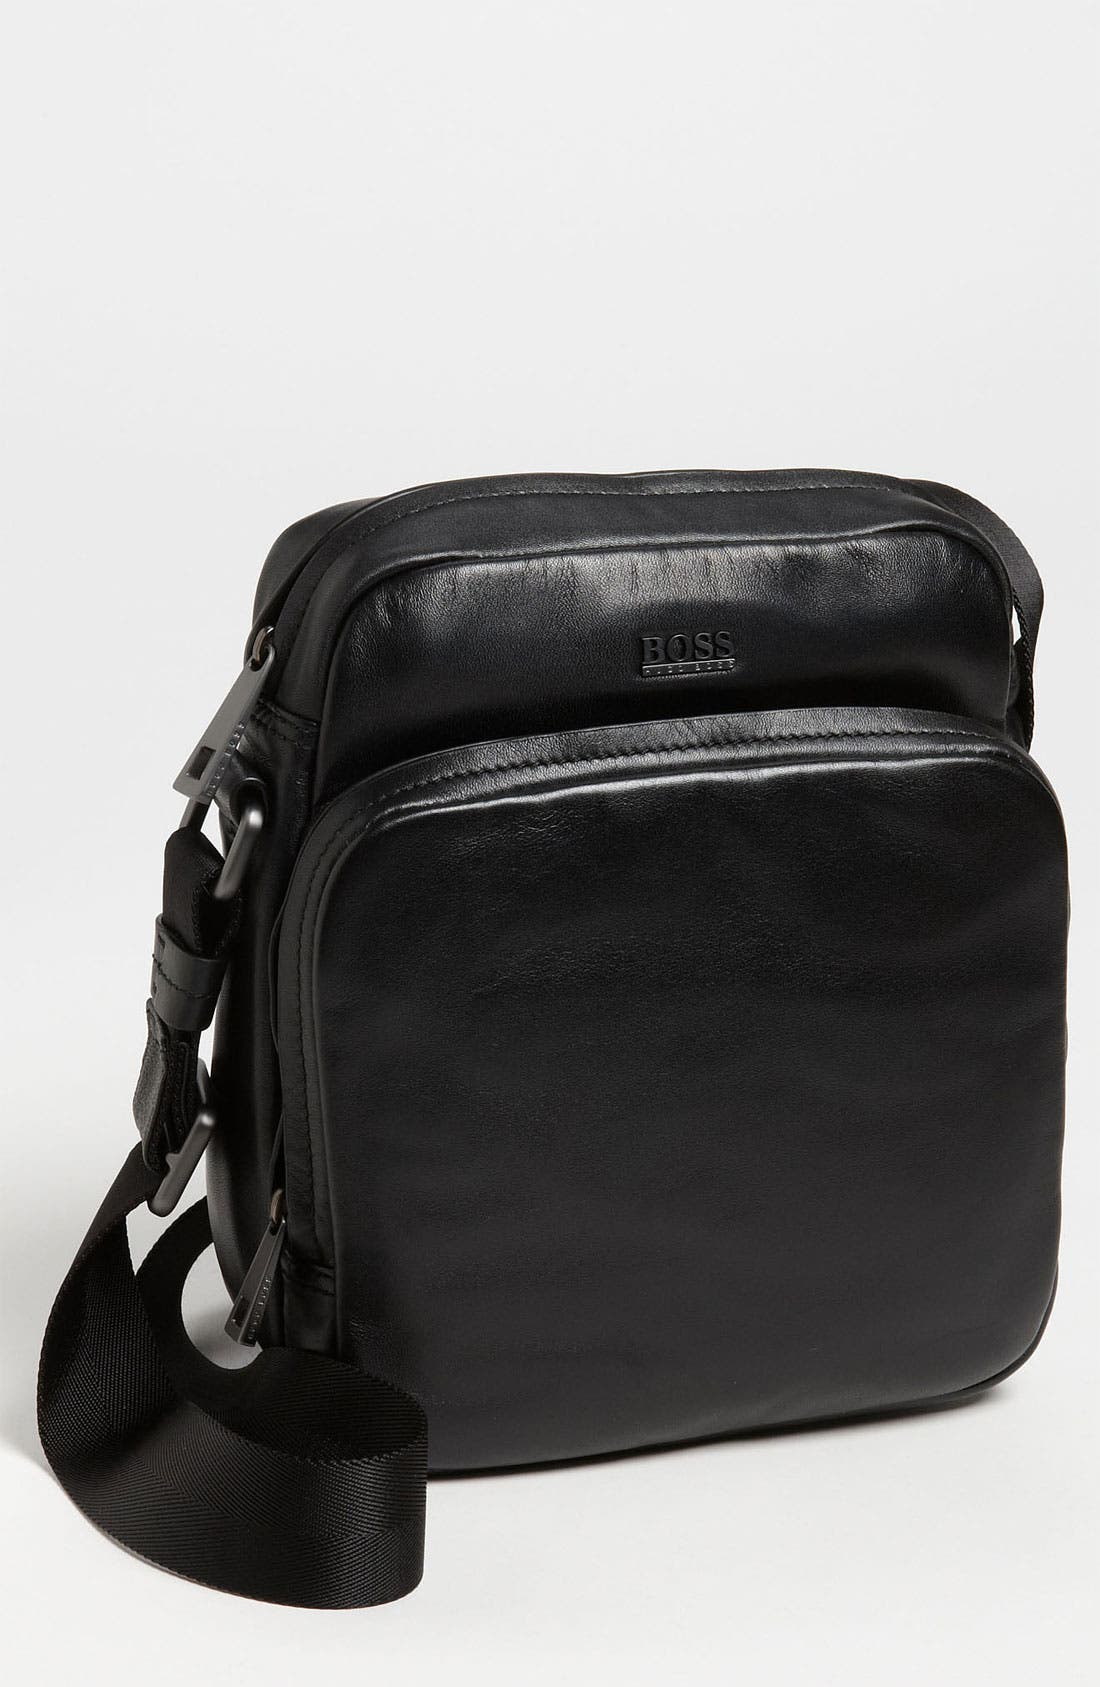 Main Image - BOSS Black 'Kunsty' Messenger Bag